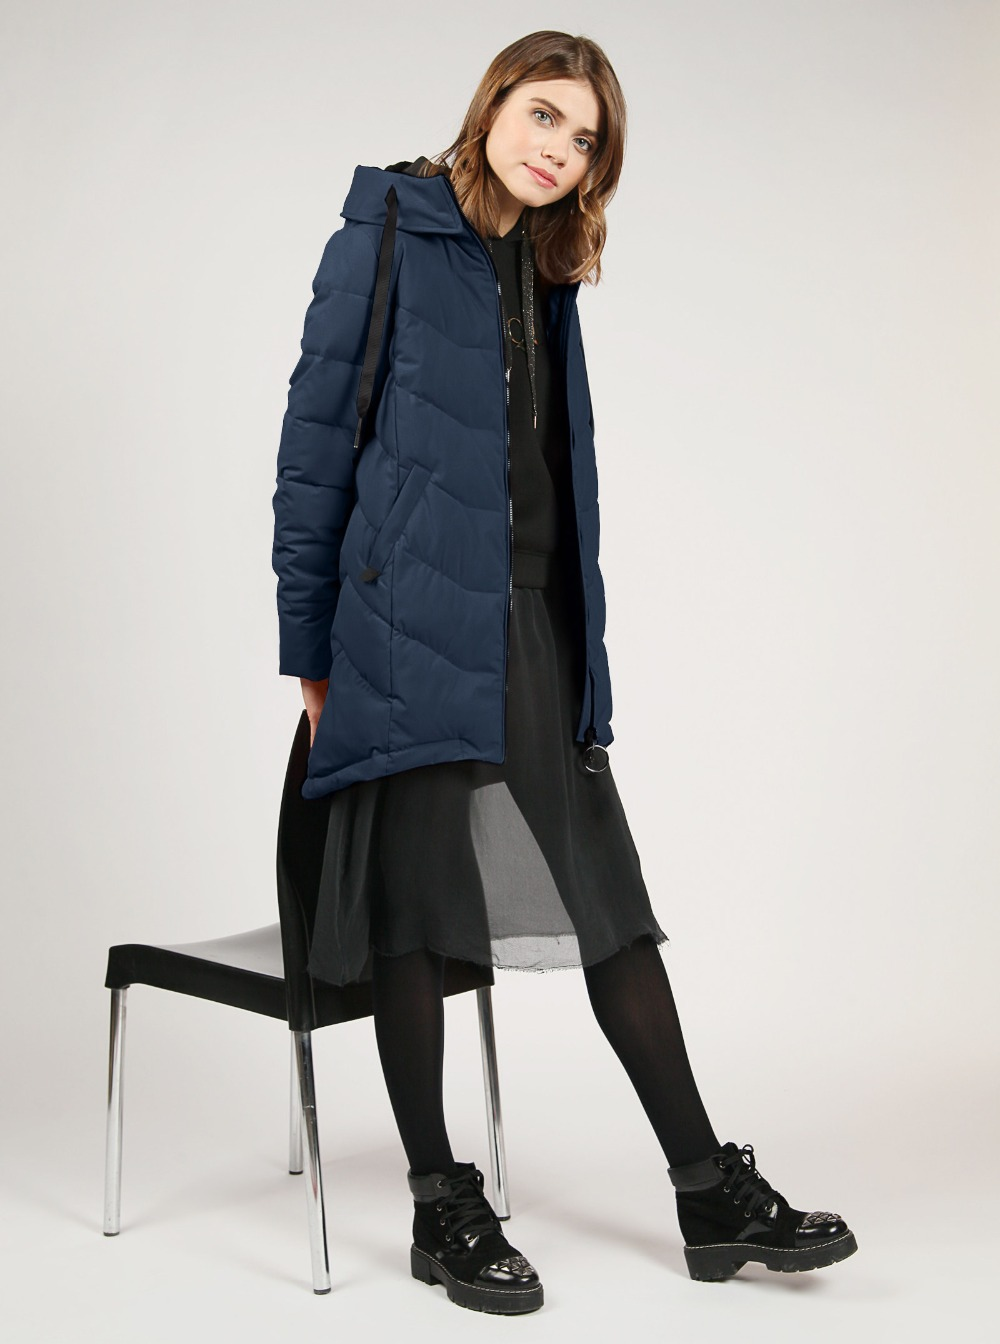 tom farr down jacket woman hooded 2018 winter female clothes coats T4F-W3602_67 two tone hooded patched casual jacket